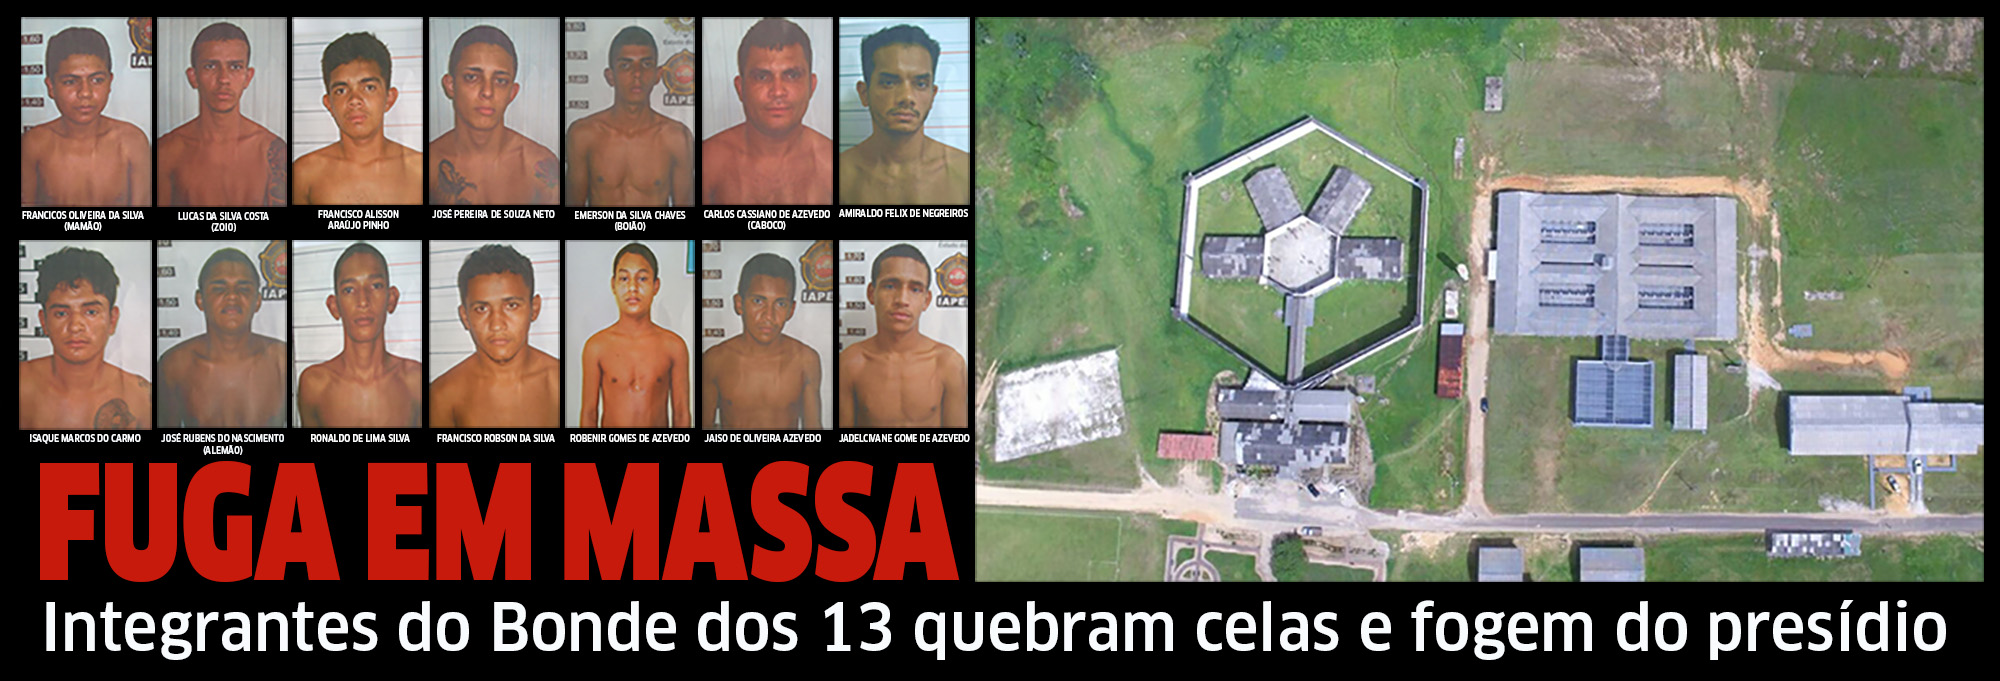 Integrantes do B 13 quebram celas e fogem do presídio de Cruzeiro do Sul